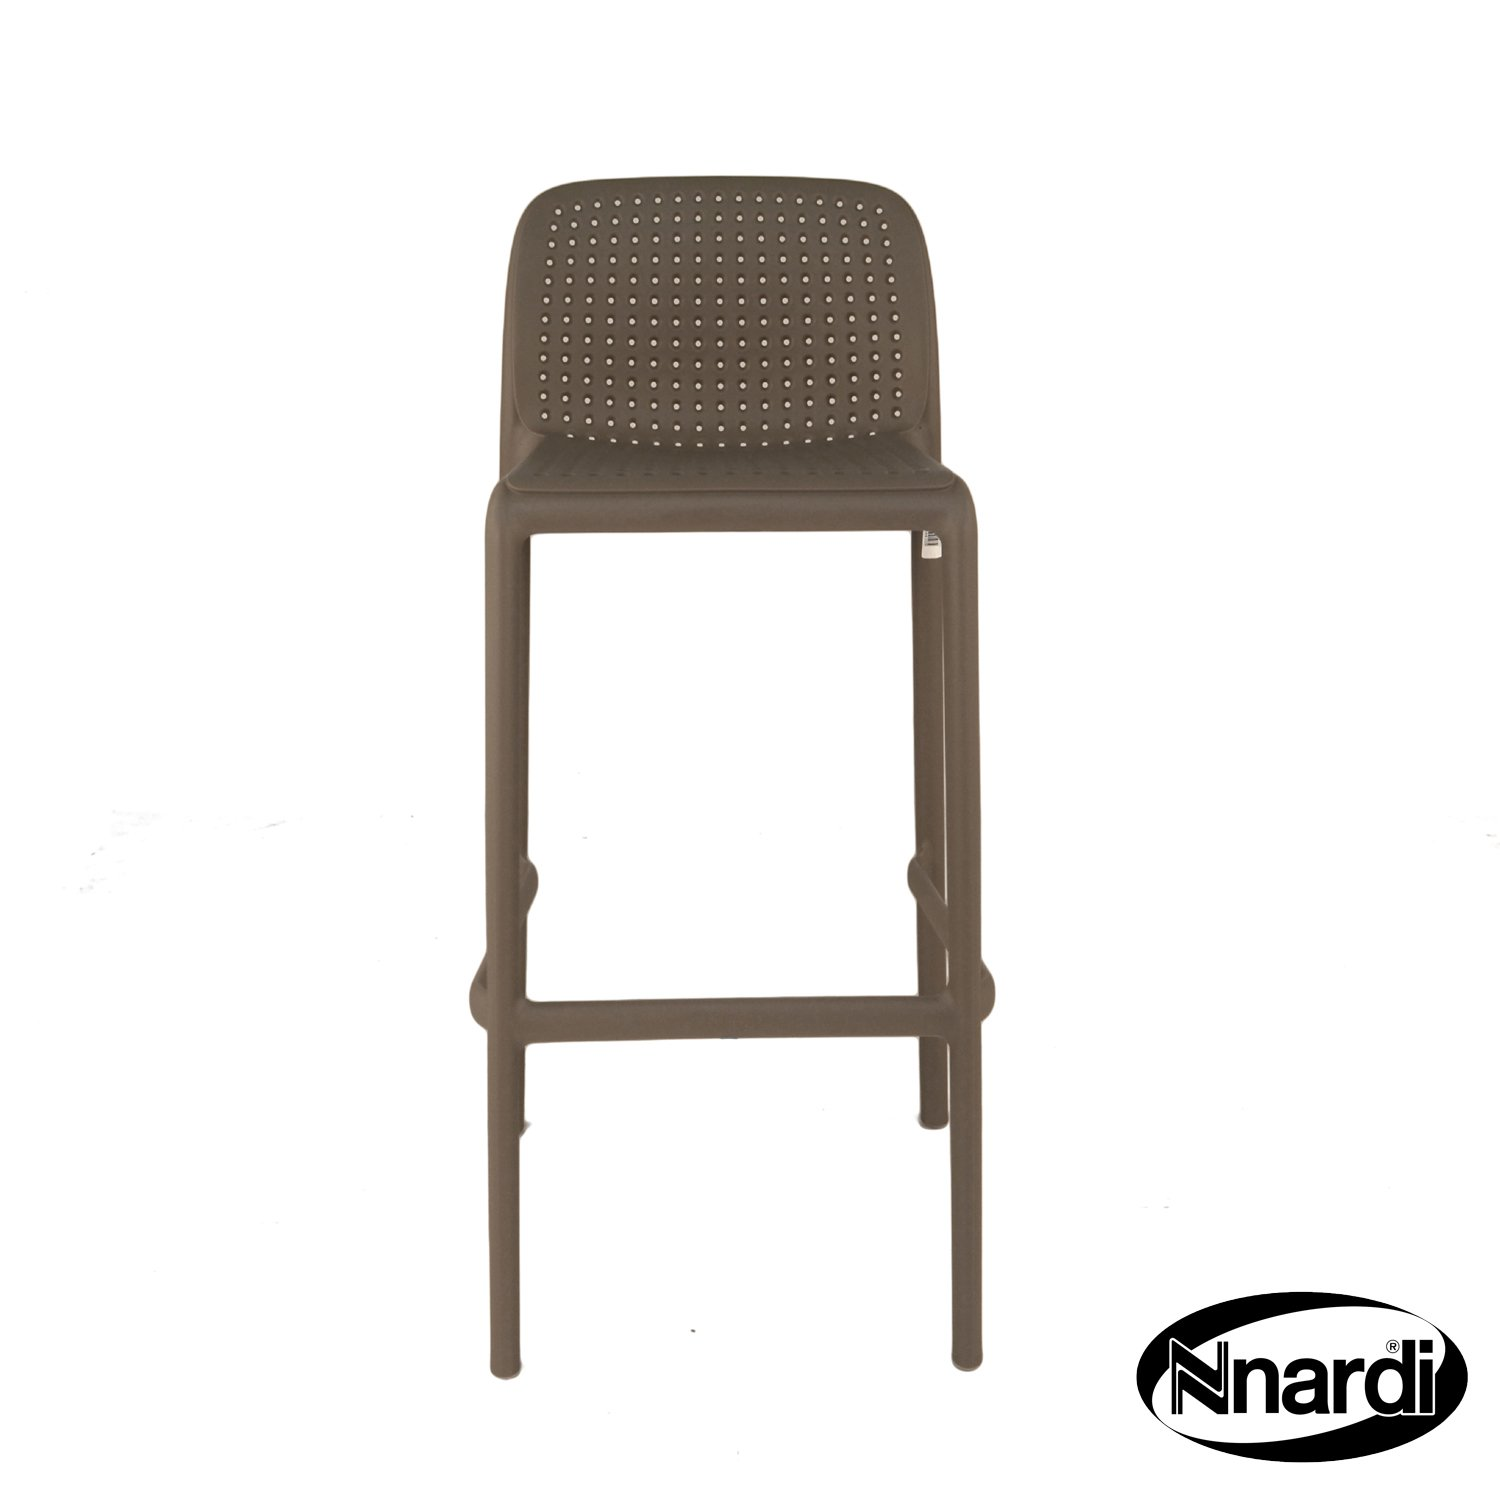 Nardi Lido Bar Stool Turtle Dove Grey At Barnitts Online